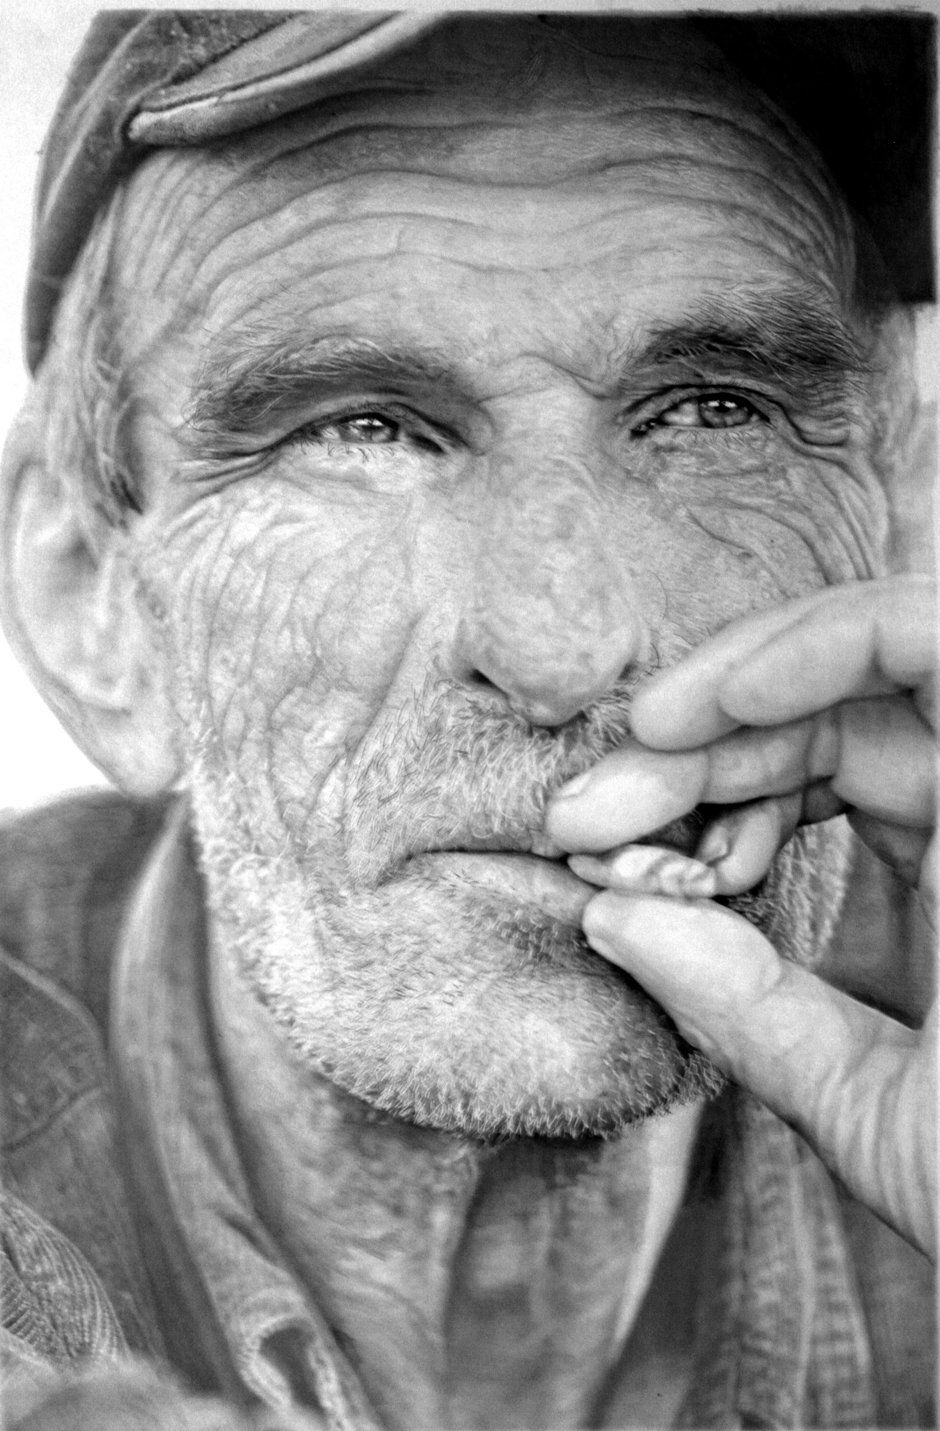 Realistic drawings look like photographs